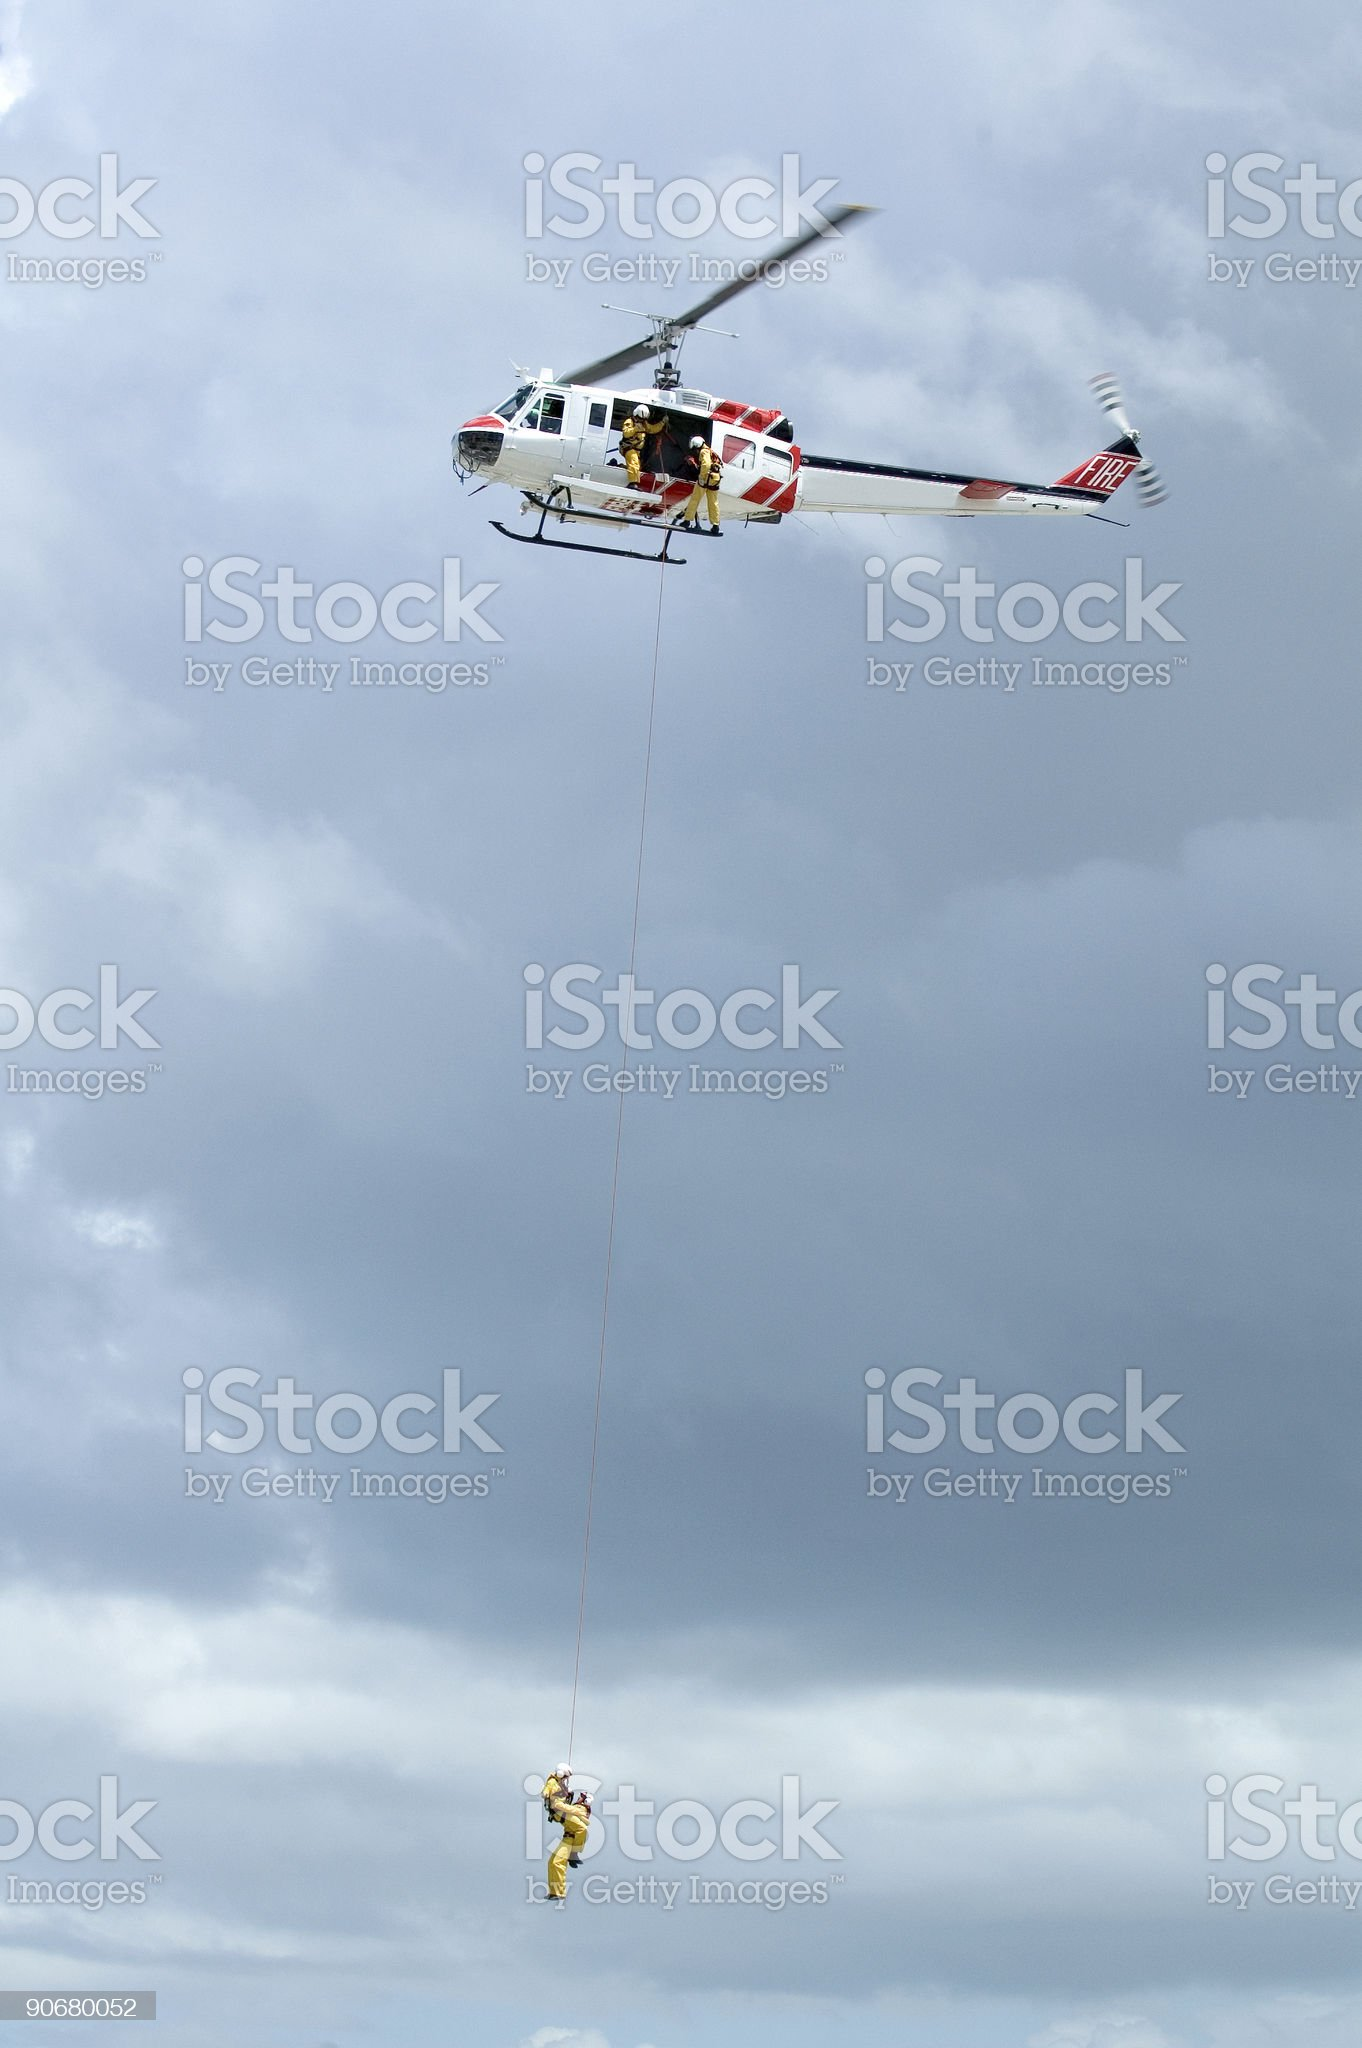 Helicopter Rescue Series royalty-free stock photo